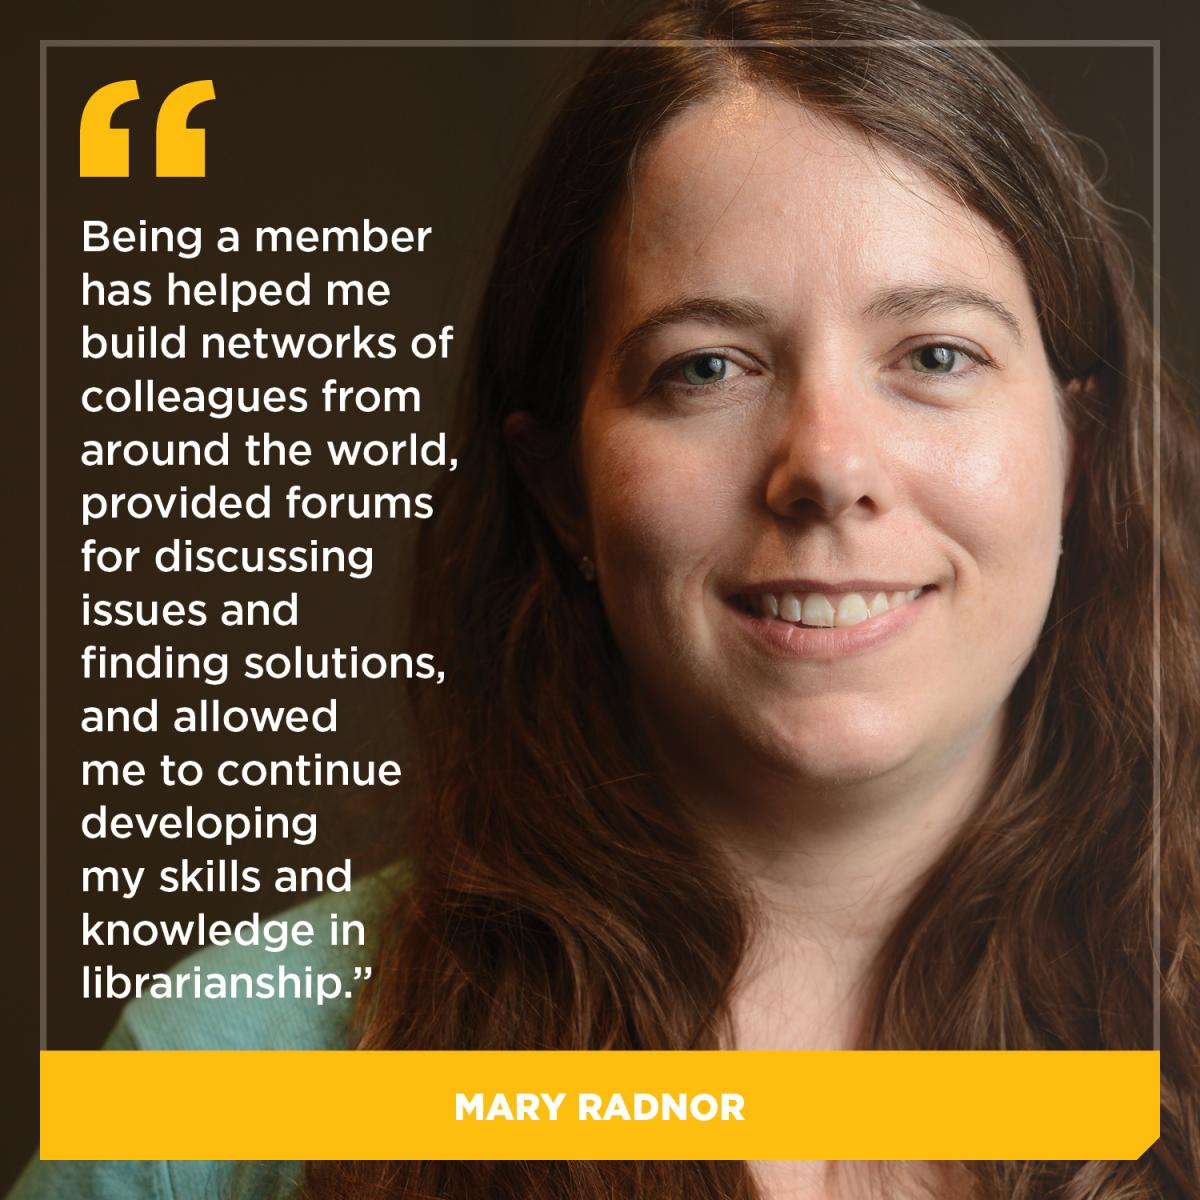 Being a member has helped me build networks of colleagues from around the world, provided forums for discussing issues and finding solutions, and allowed me to continue developing my skills and knowledge in librarianship